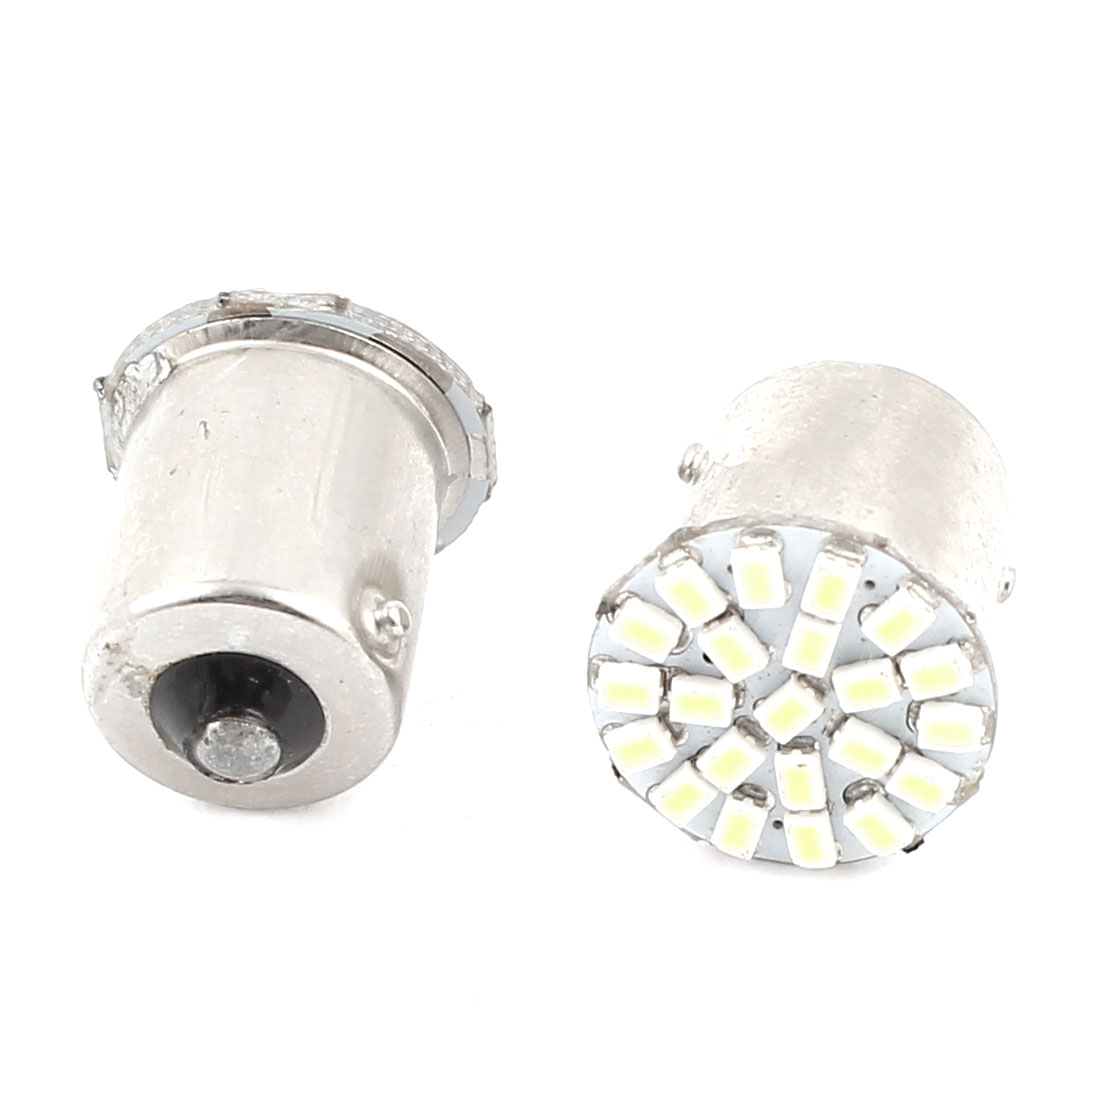 2 Pcs White 22 LED 1156 BA15S 3528 SMD Car Indicator Backup Tail Turn Light 1093